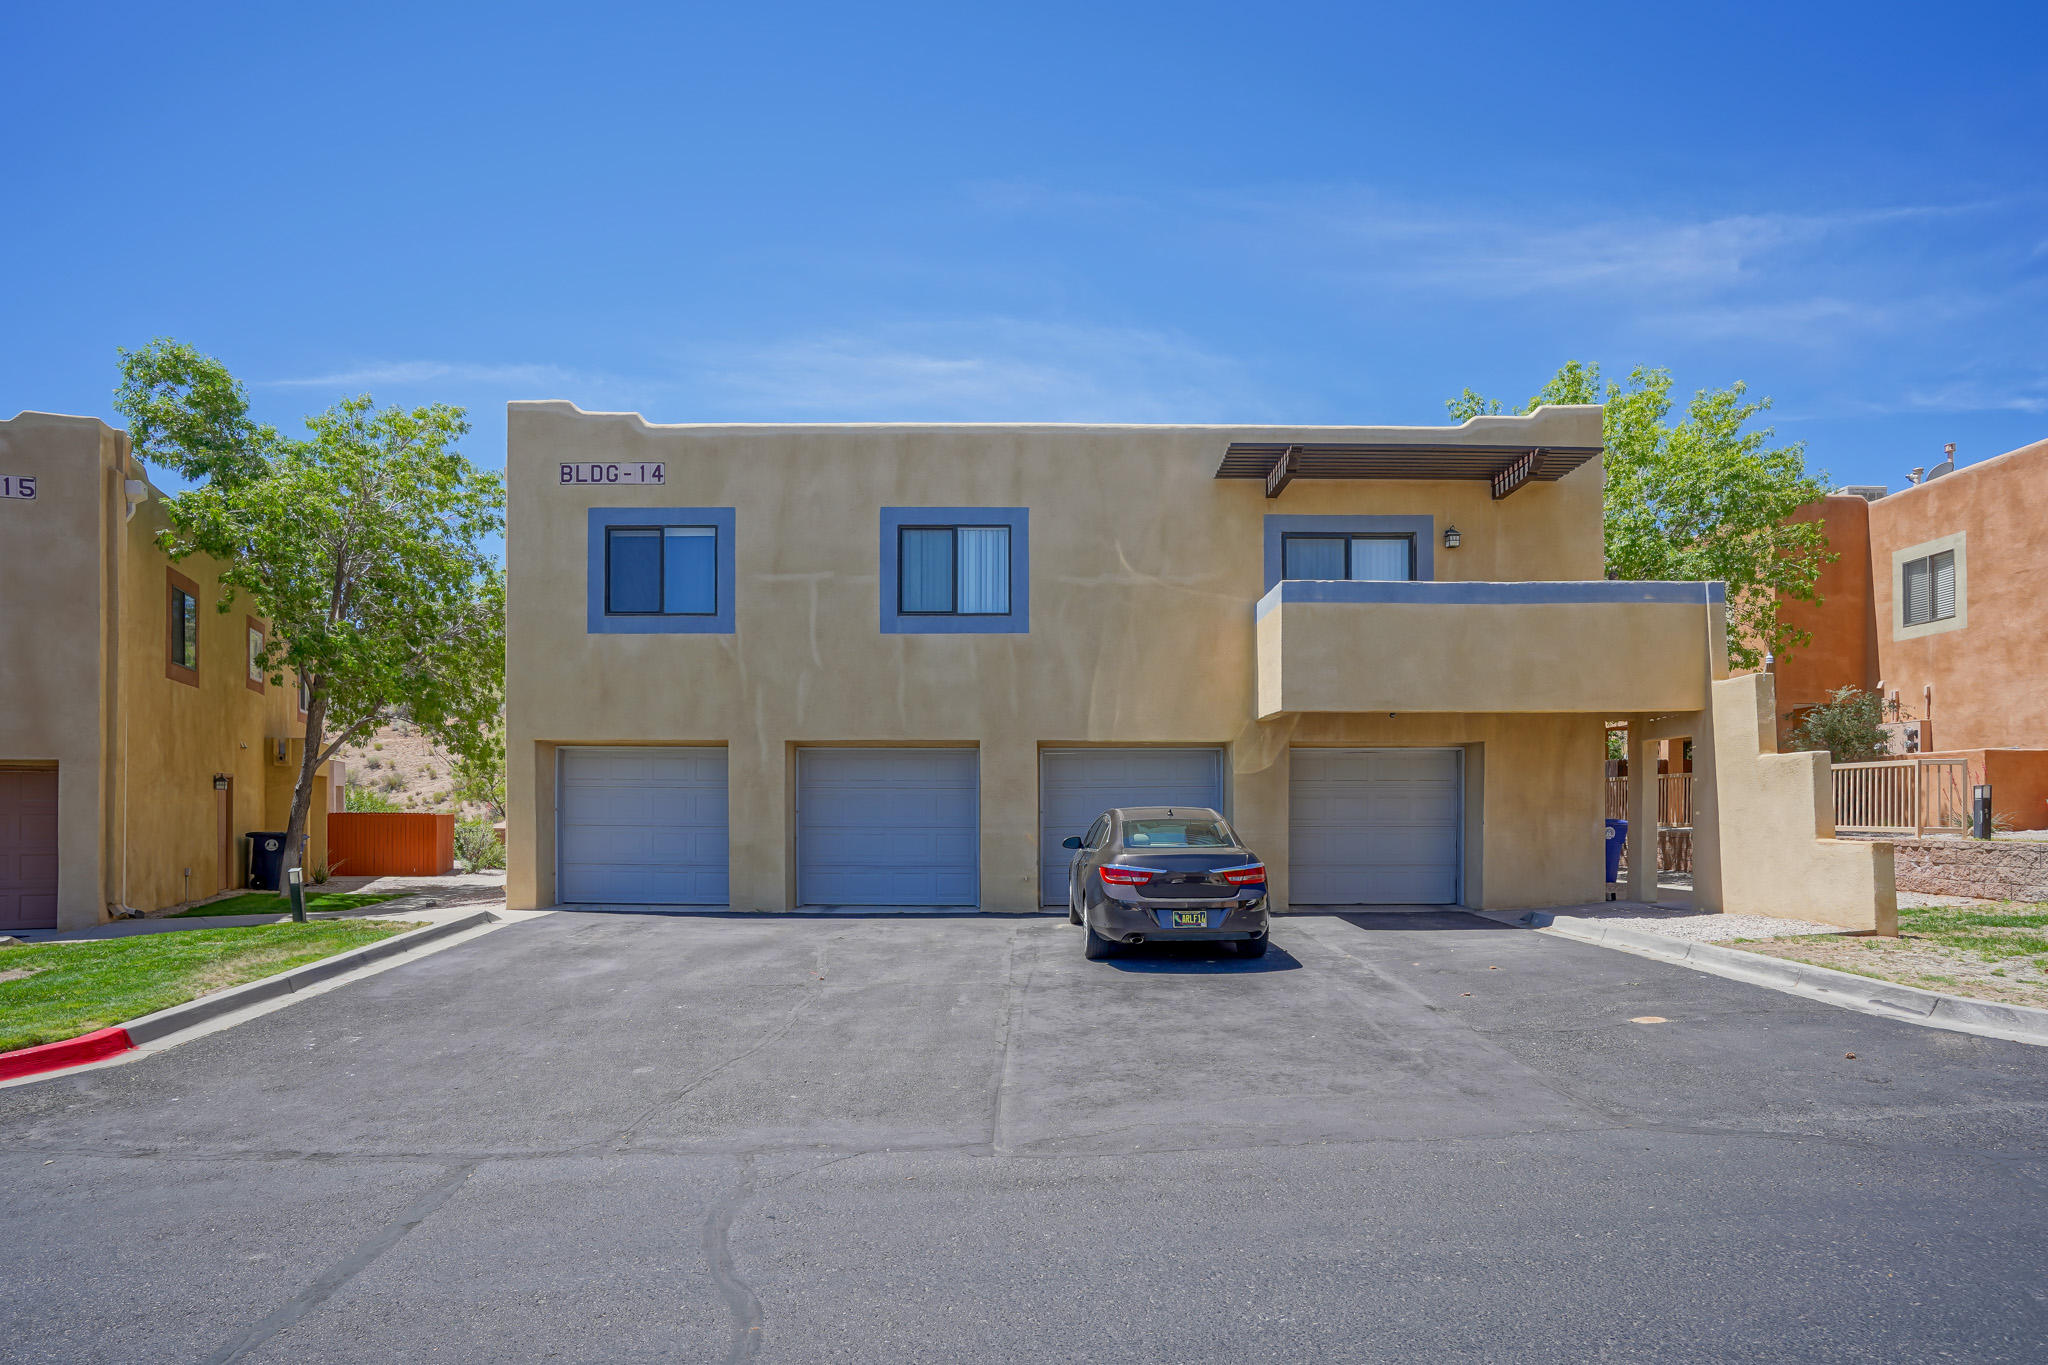 Welcome to this lovely 2 bedroom, 1 bath home in the popular Arroyo Del Sol community. Desirable back unit & the entire living space is on the ground floor.  Open floor plan, great room has a gas log fireplace with tile surrounds, private patio off the kitchen. Single car garage.  Close to shopping.